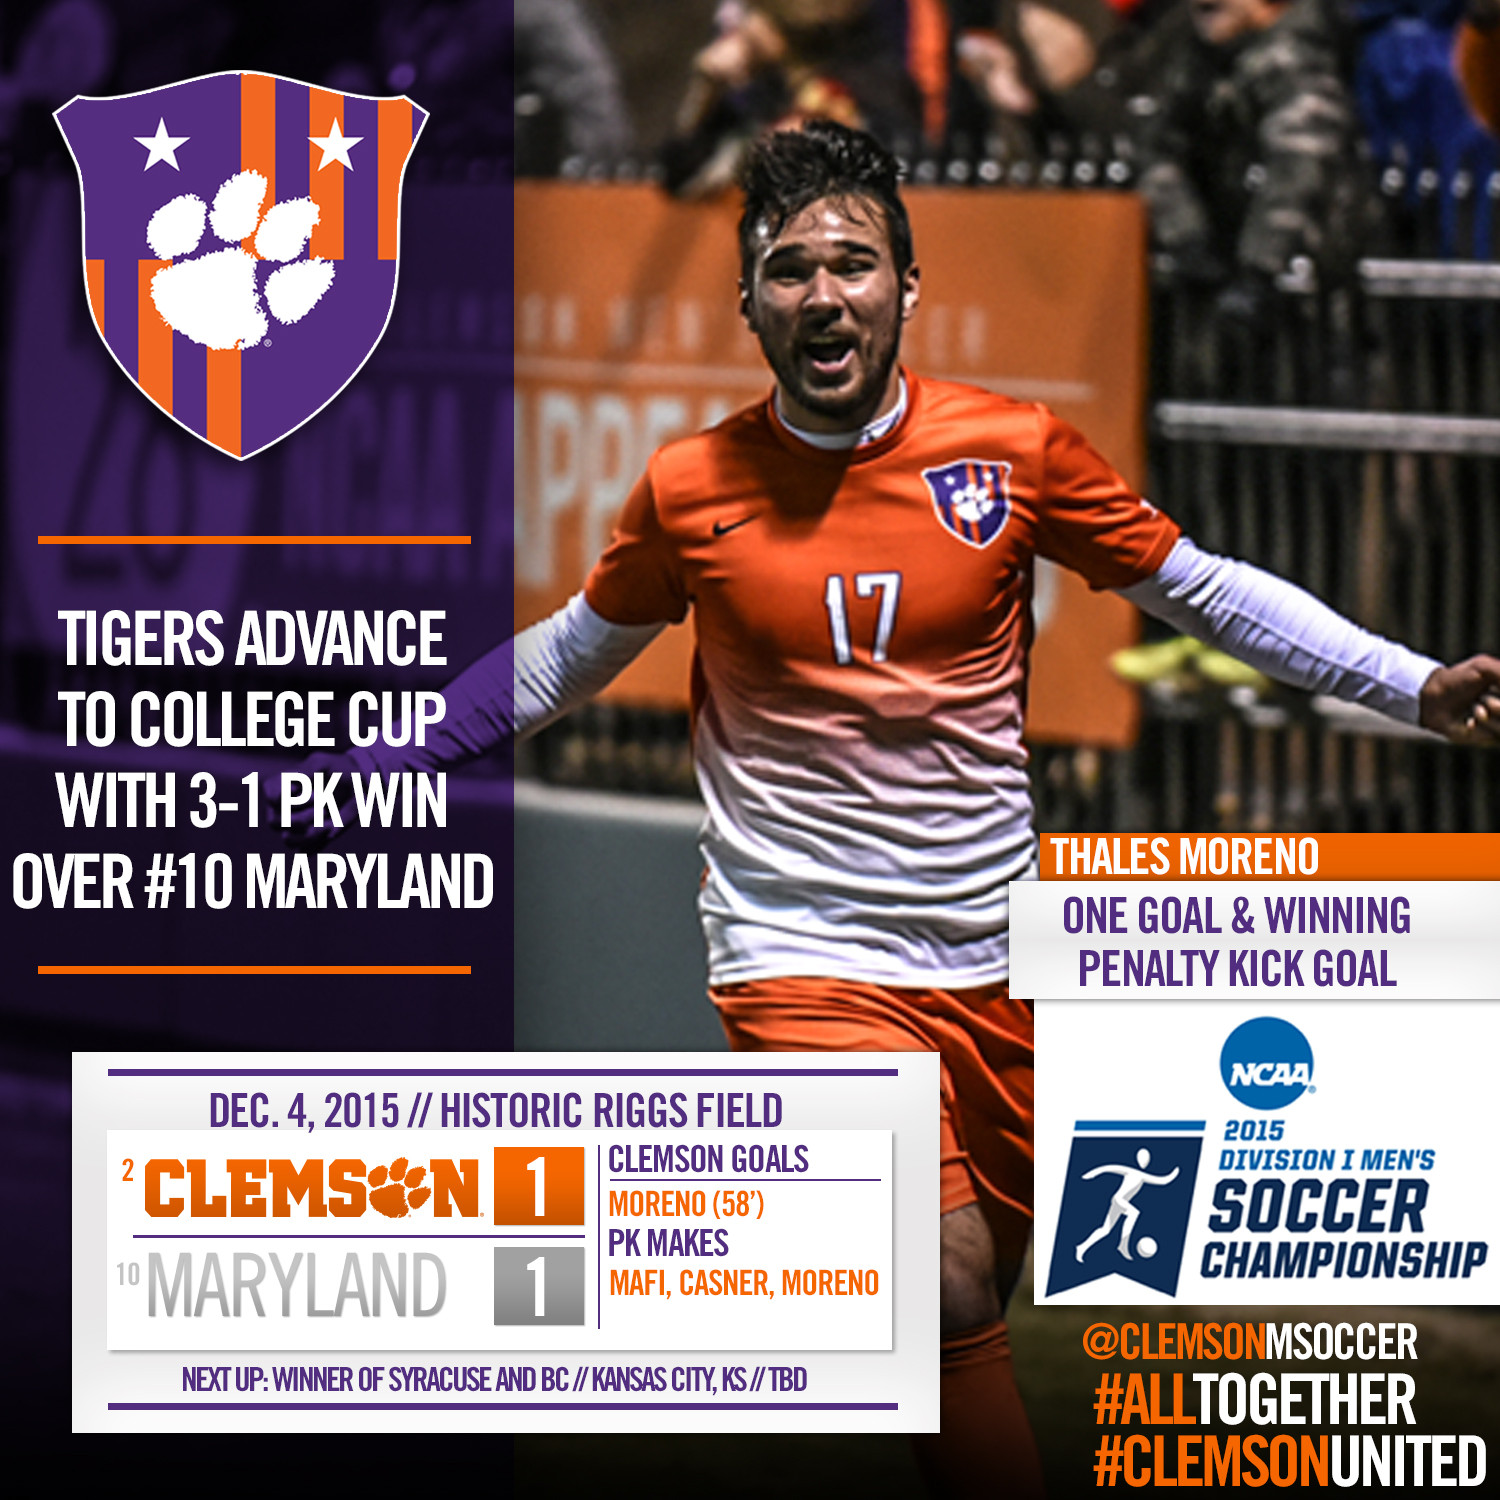 Clemson Advances to NCAA College Cup with PK Win Over Maryland Friday